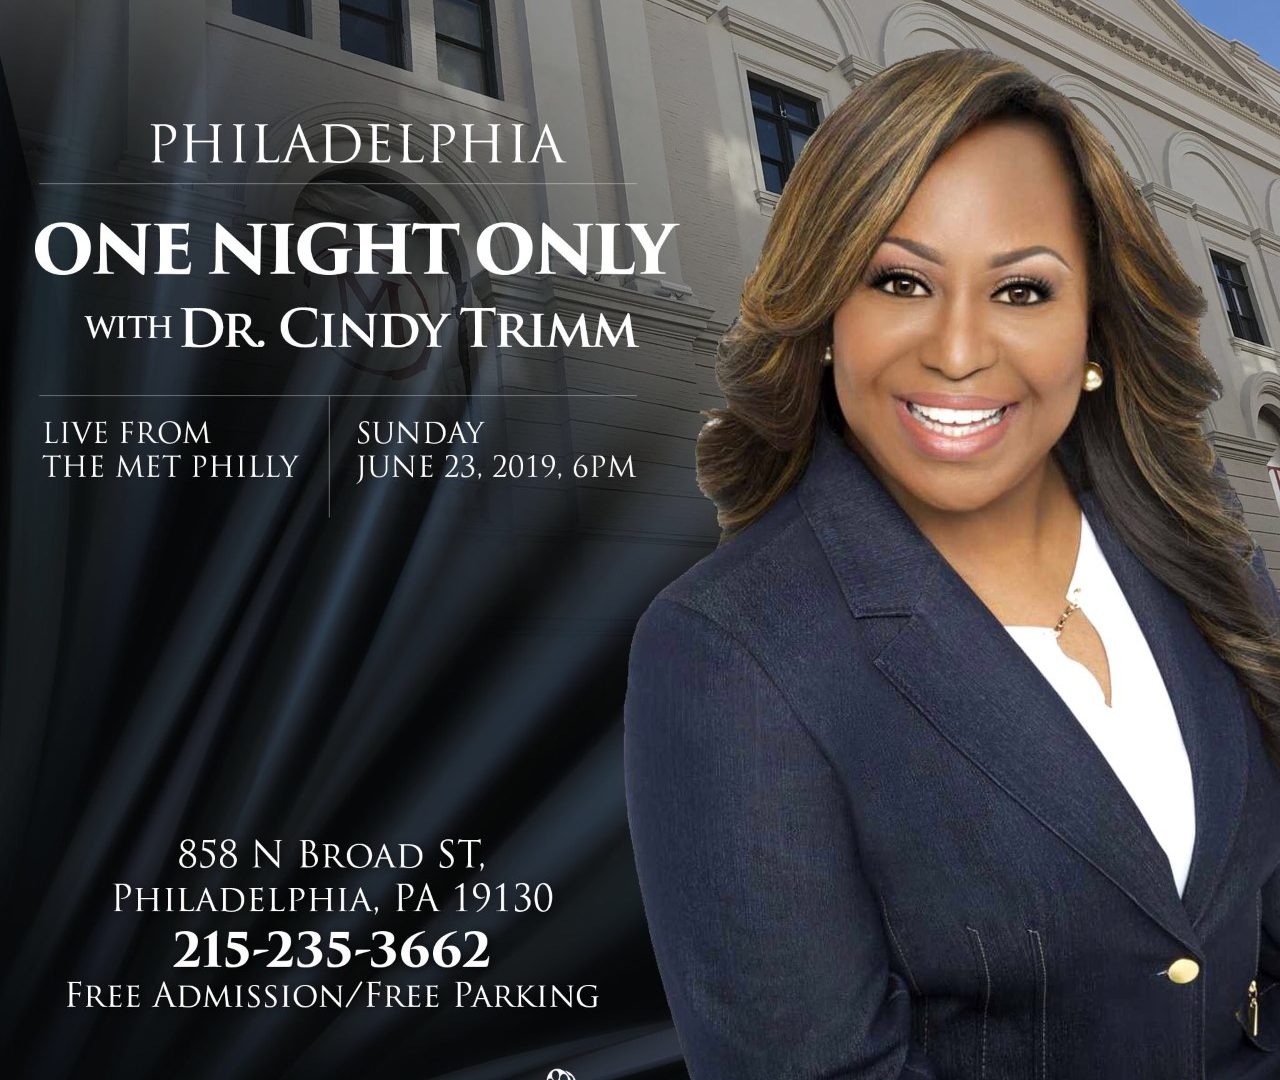 If You Are In Philadelphia You Don't Want To Miss Sunday At